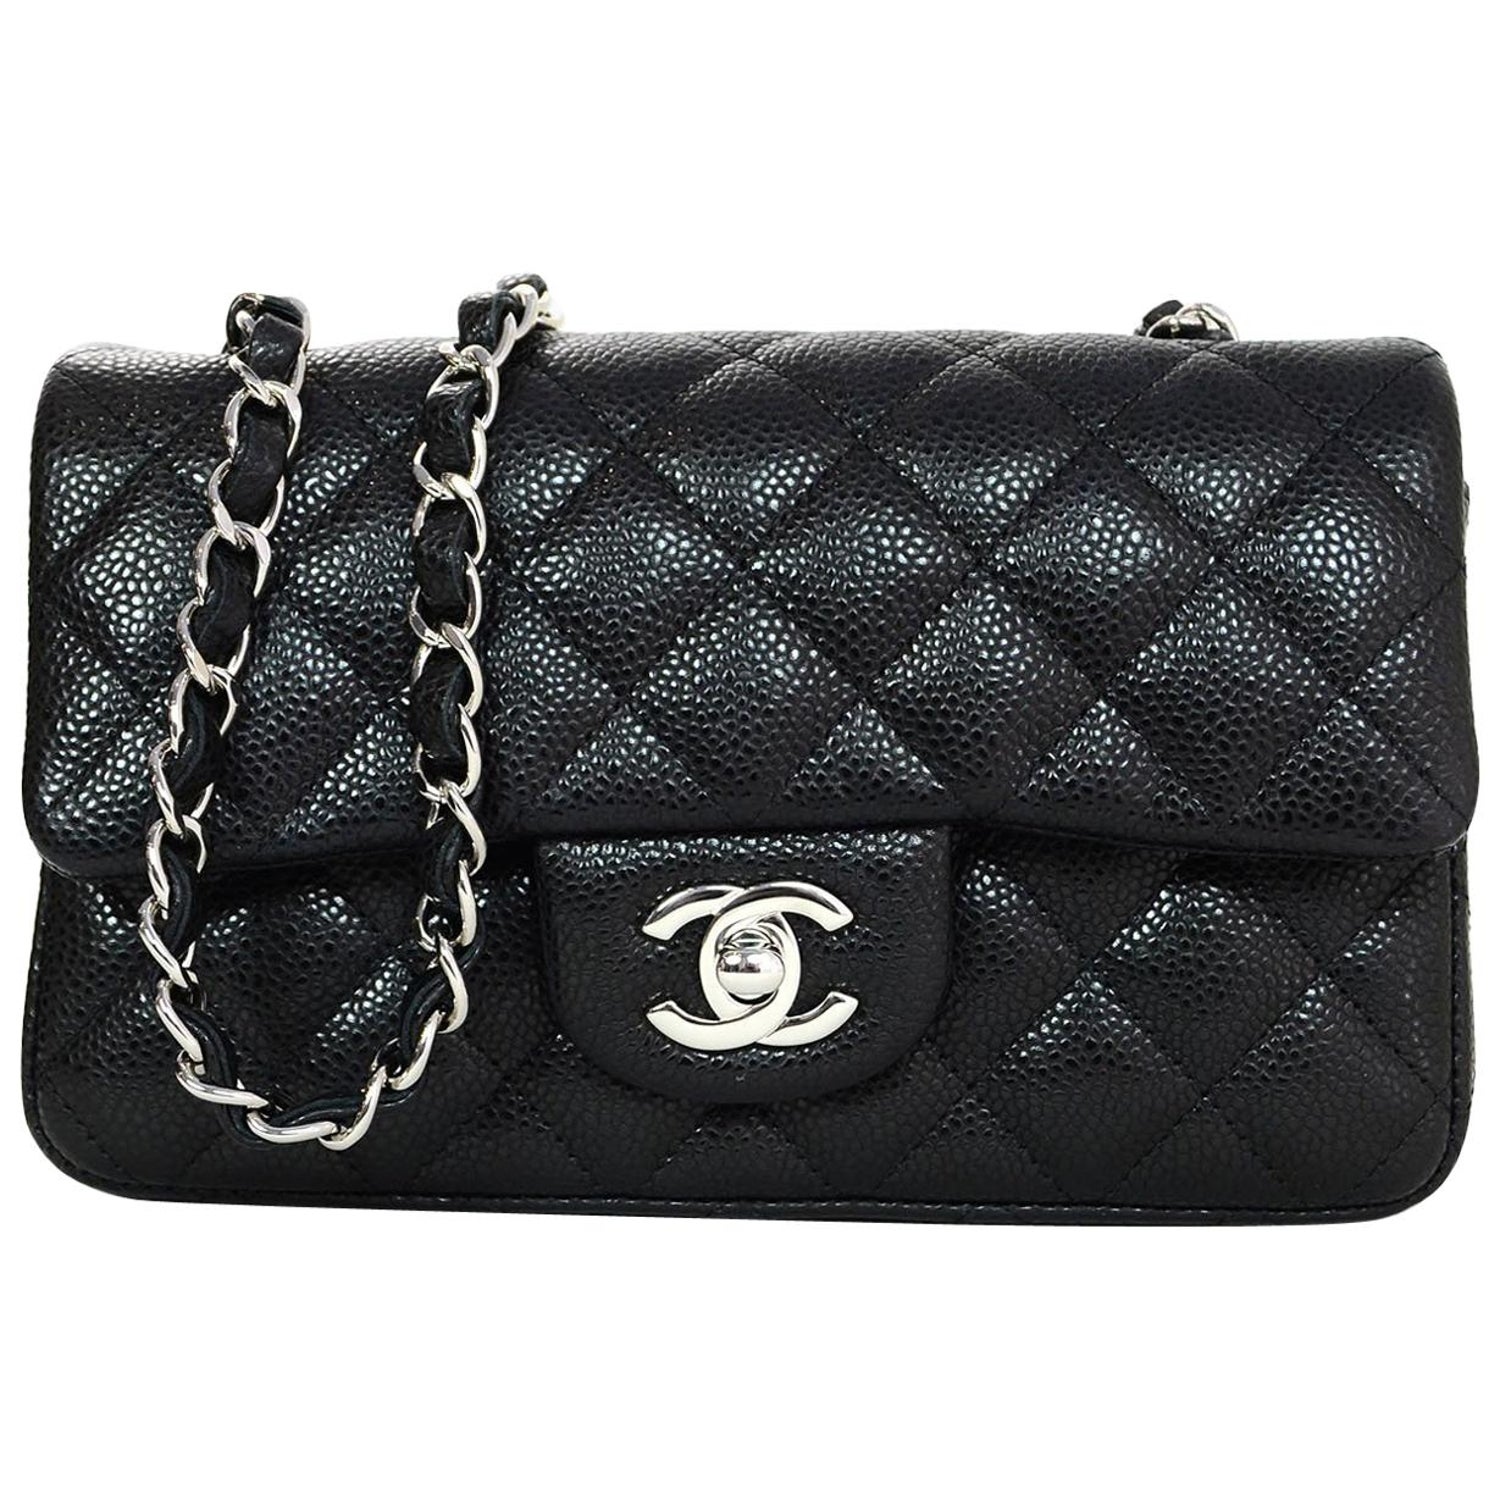 8ee8095b5cce Chanel 2018 Black Quilted Caviar Rectangular Mini Flap Crossbody Bag w.  Receipt For Sale at 1stdibs